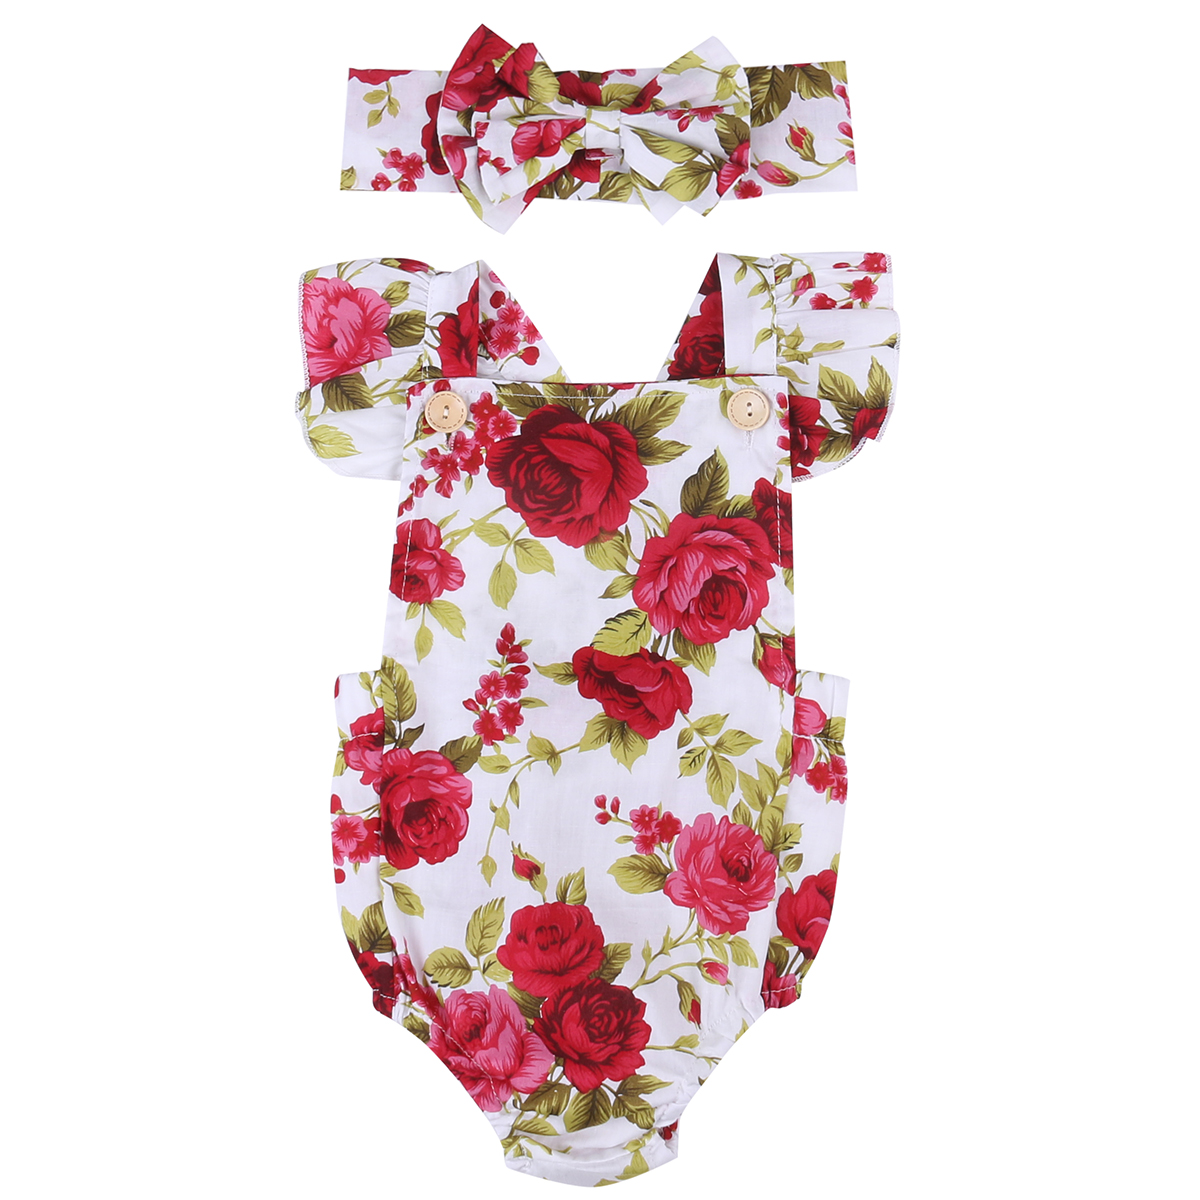 Ruffled Flower Baby Rompers Summer newborn Baby Costumes Kids Jumpsuit toddler baby girl Romper ropa bebe clothes polo outfits